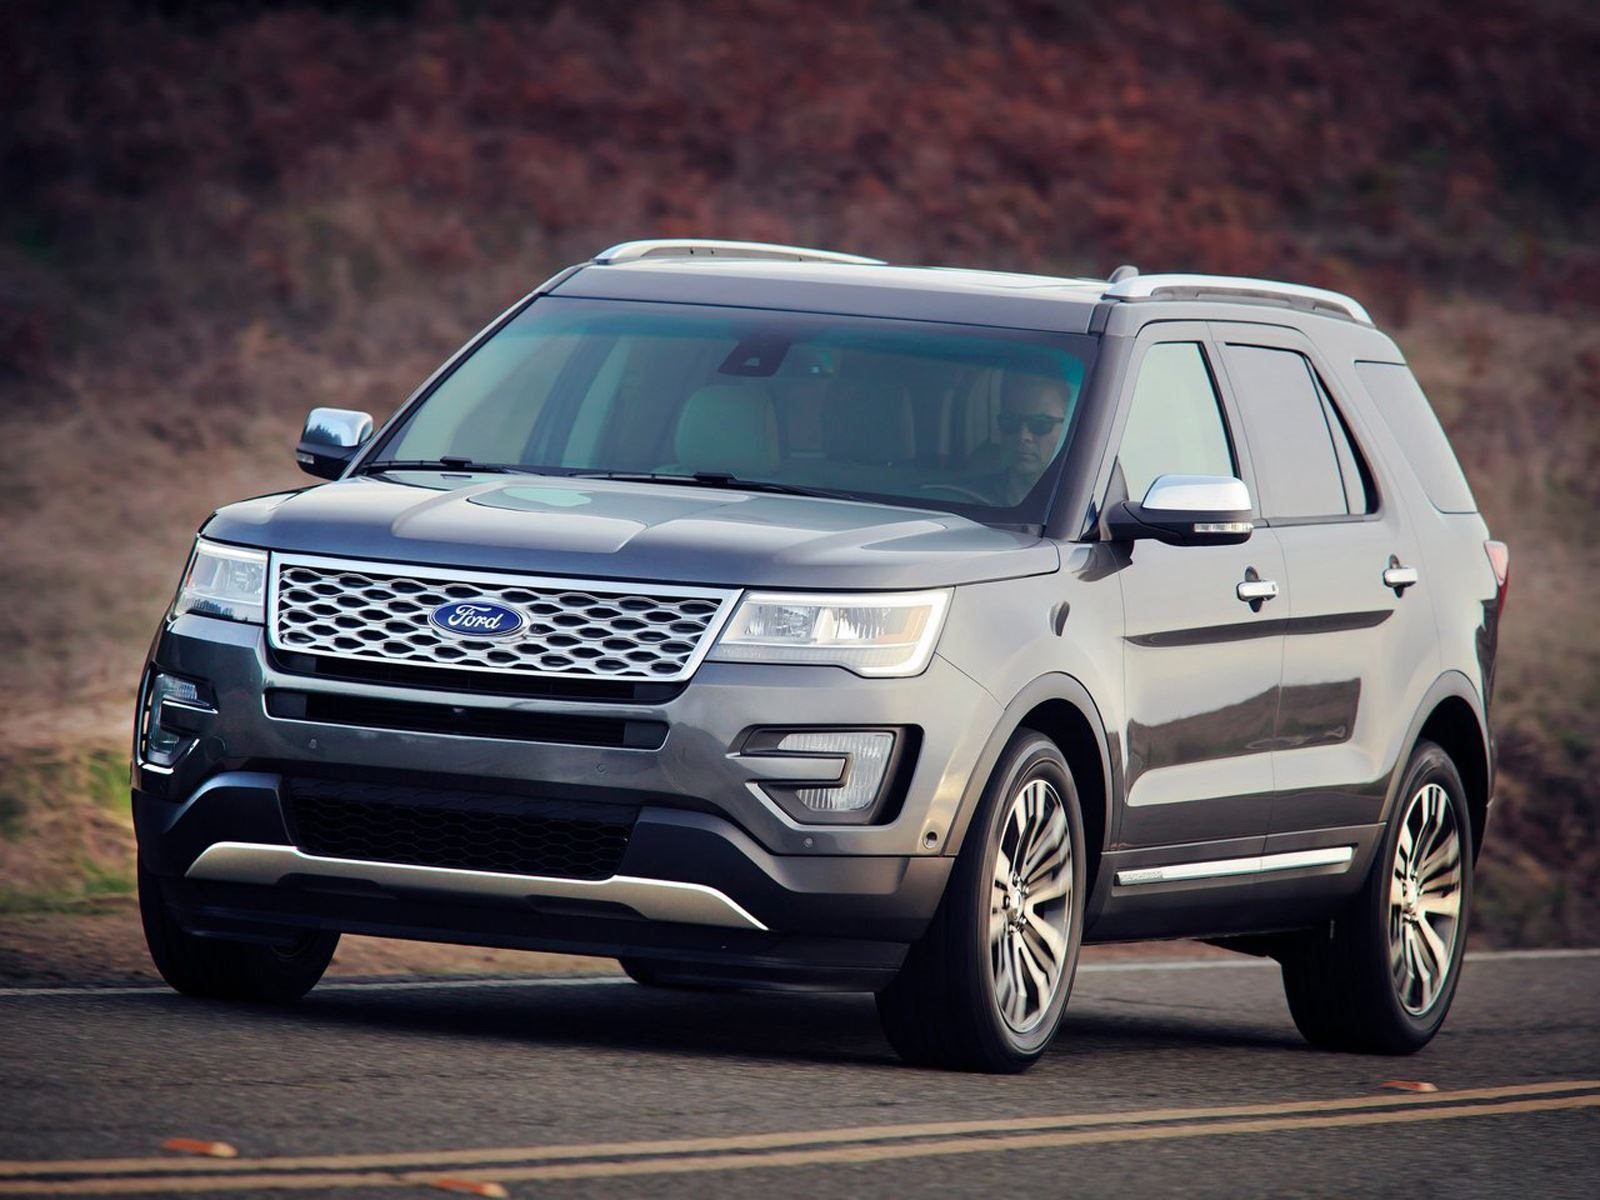 2020 ford explorer will supposedly return to its suv roots carbuzz